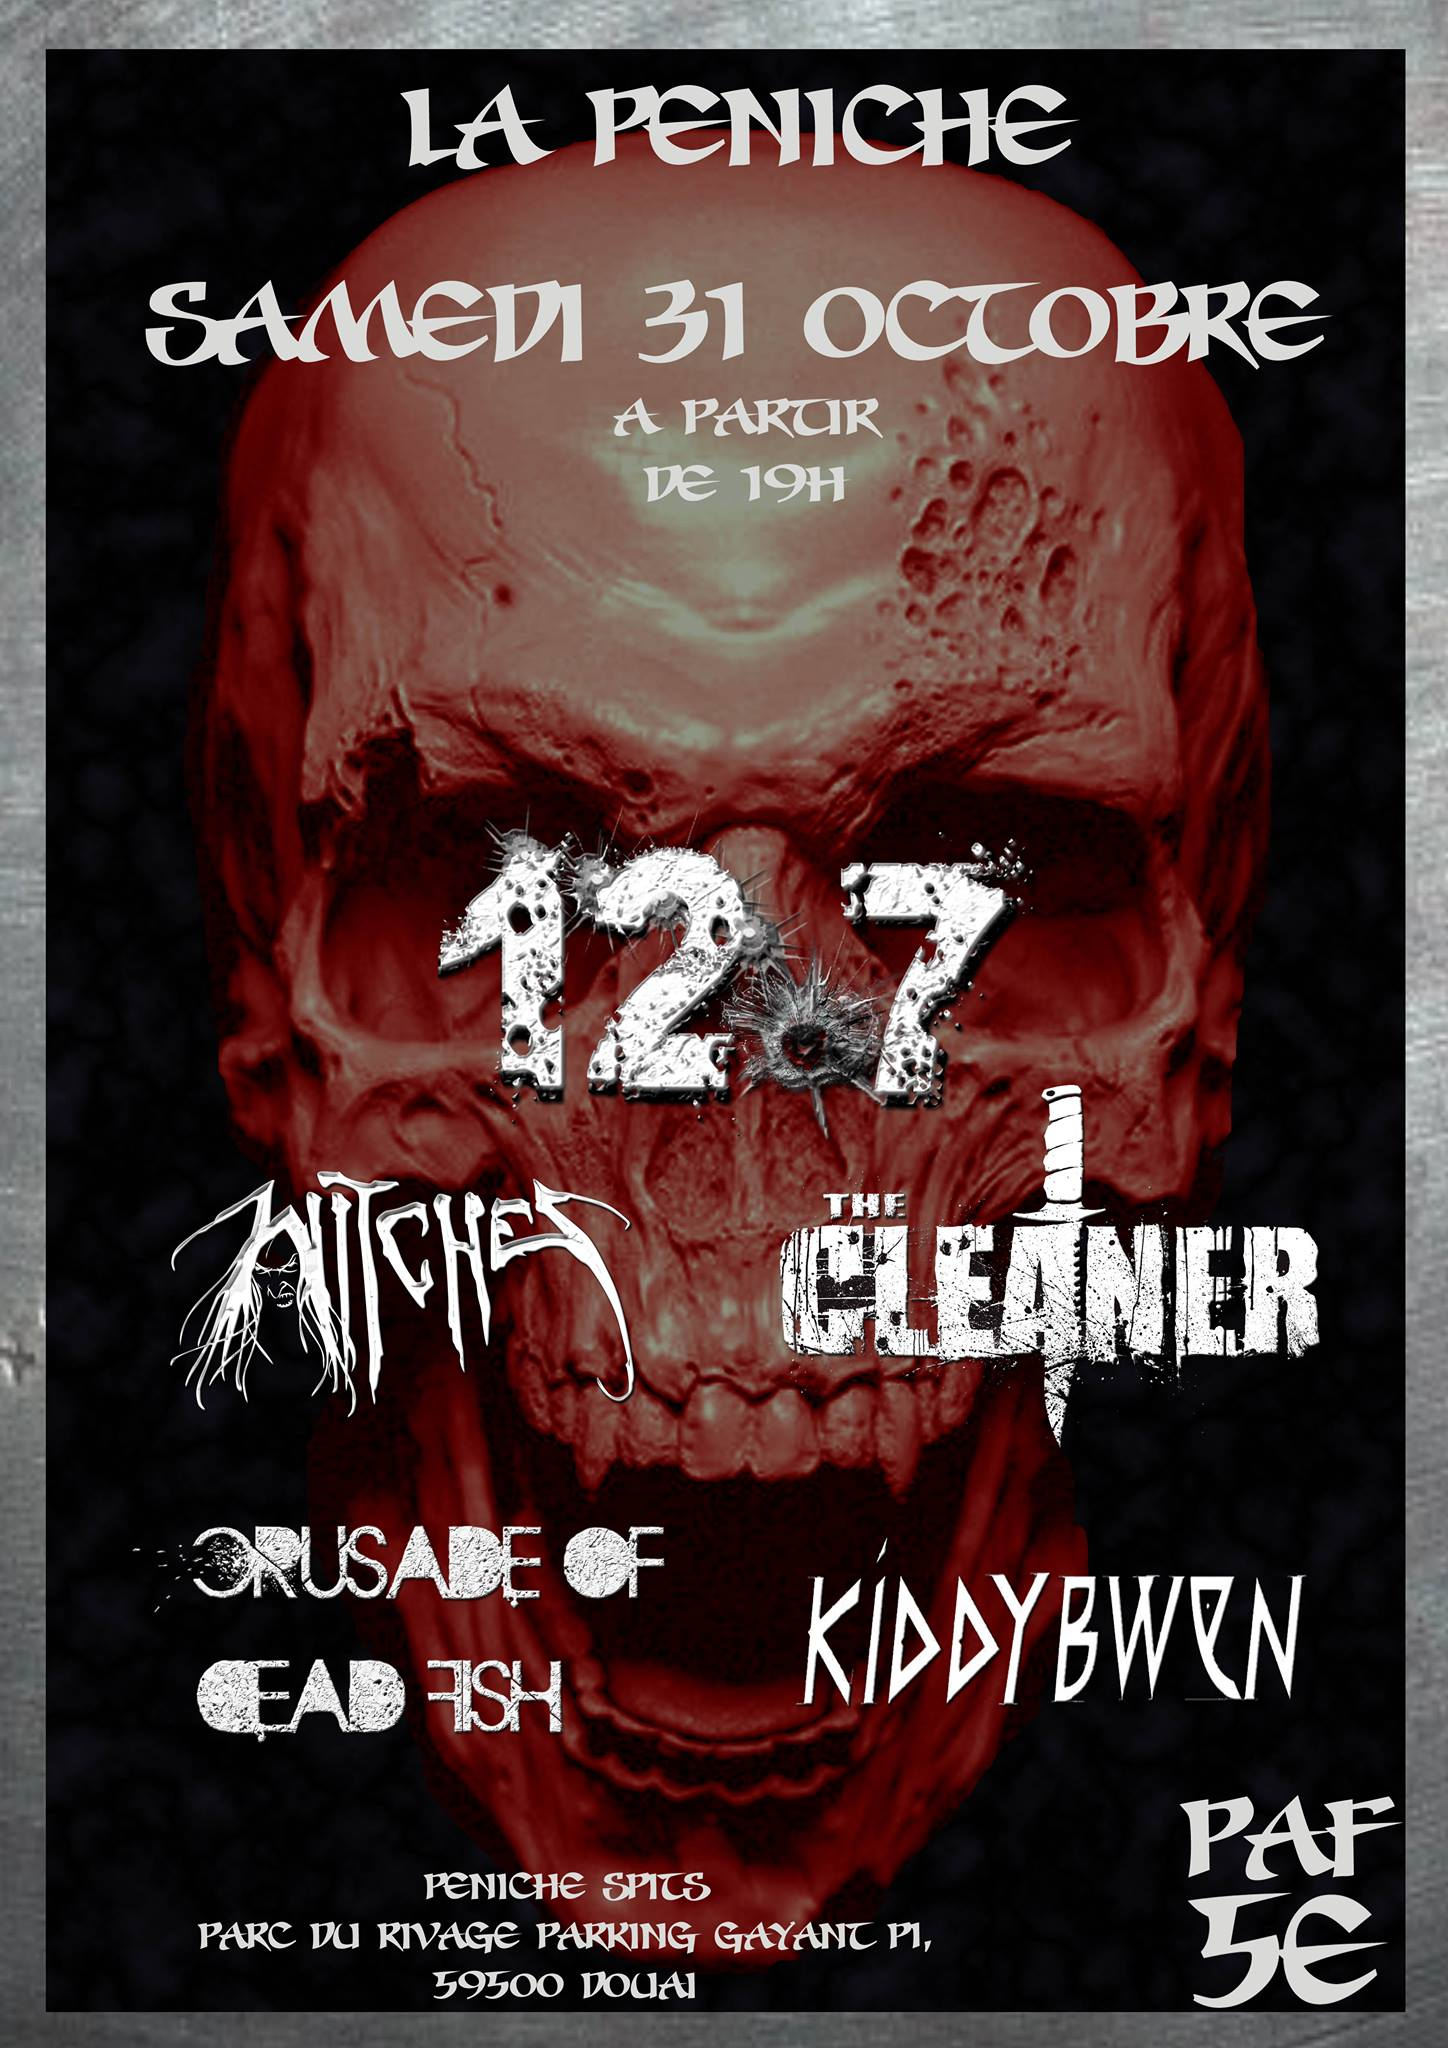 Witches flyer 12.7 + Witches + The Cleaner + Crusade of Dead Fish + Kiddybwen @ European Tour La P�niche Igelrock Douai (62), France